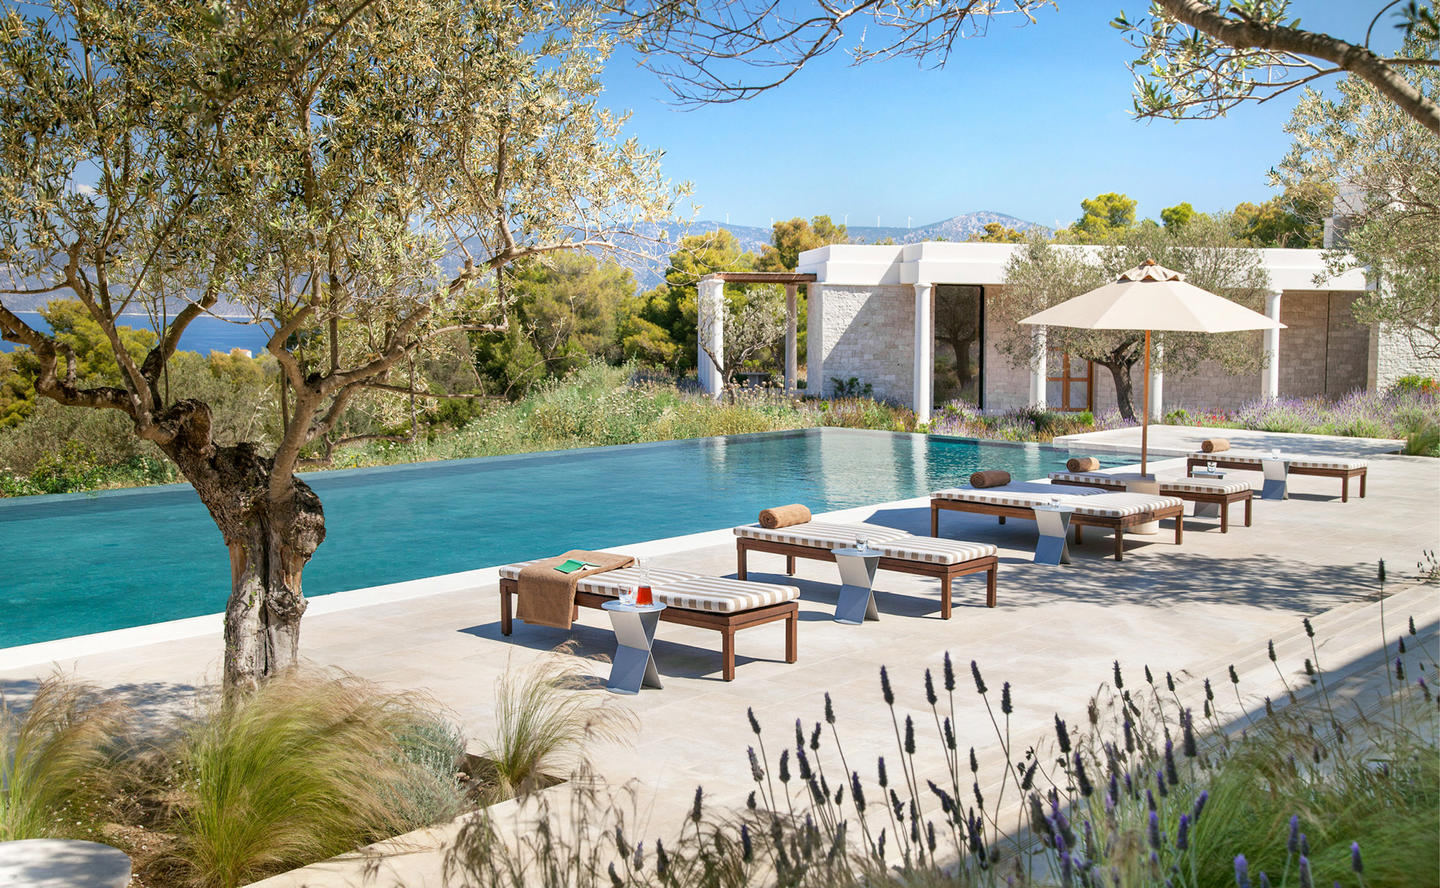 Swimming Pool & Terrace, Six-Bedroom Villa - Amanzoe, Greece